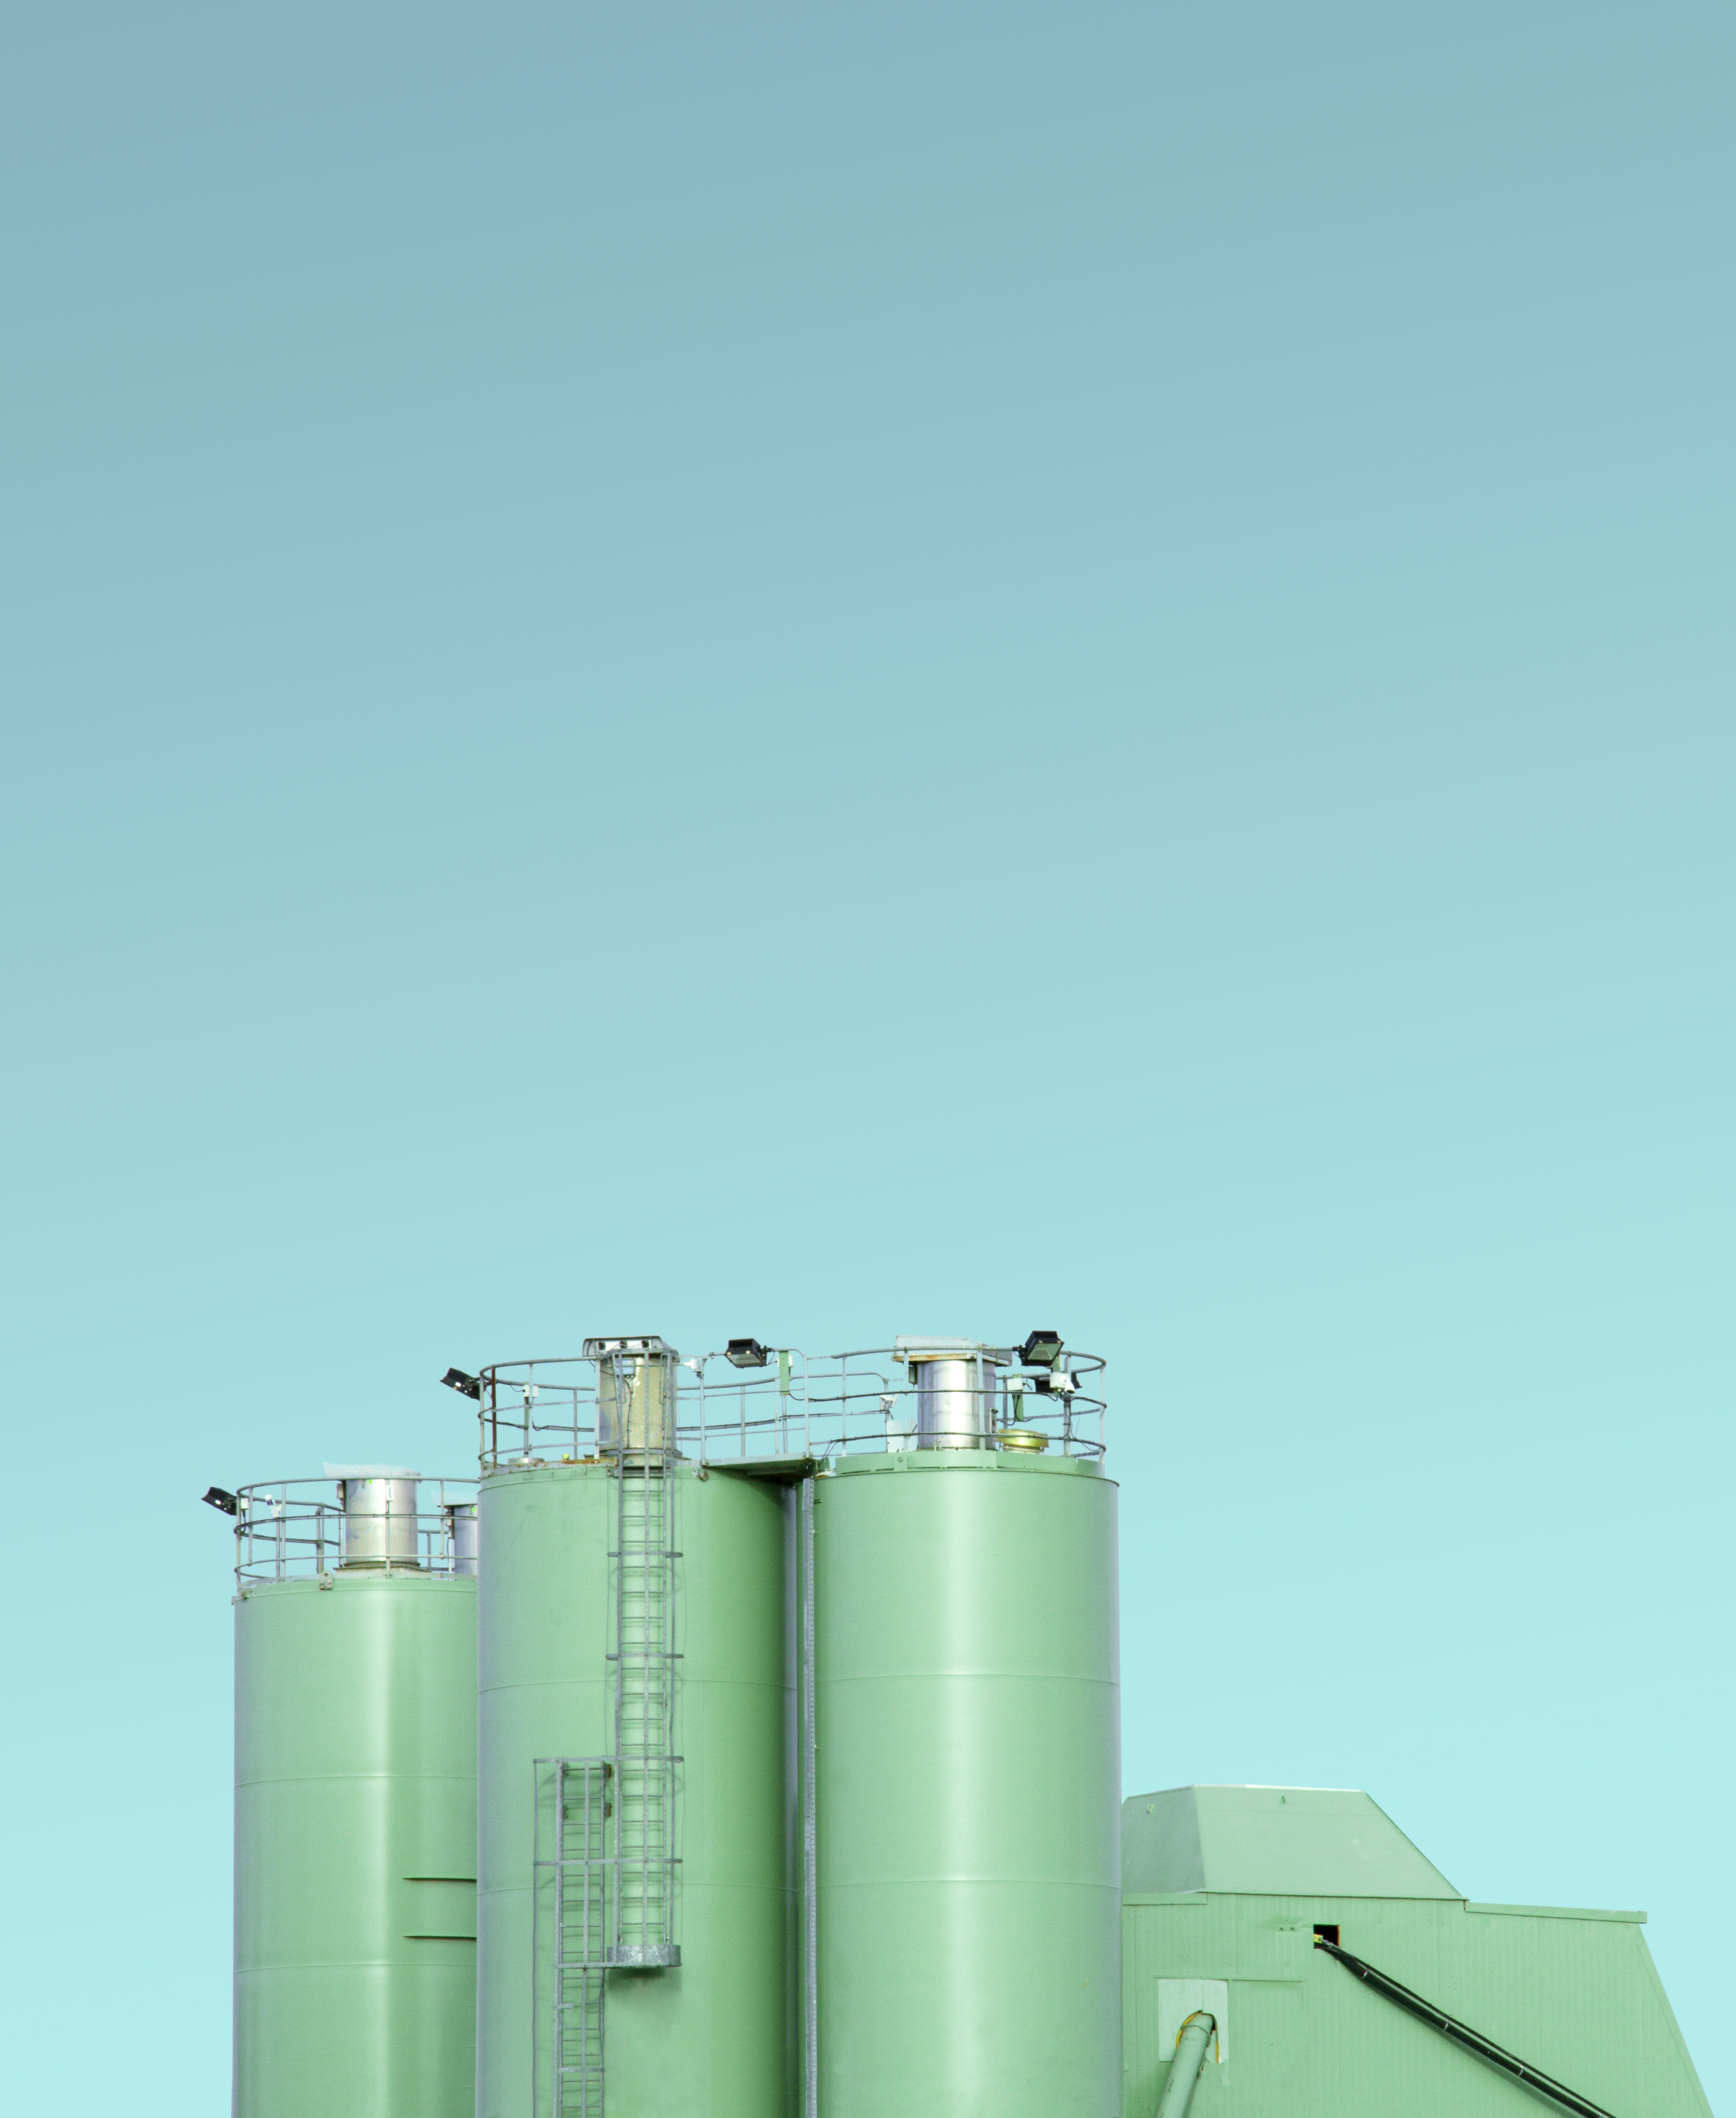 photo of teal and grey silo